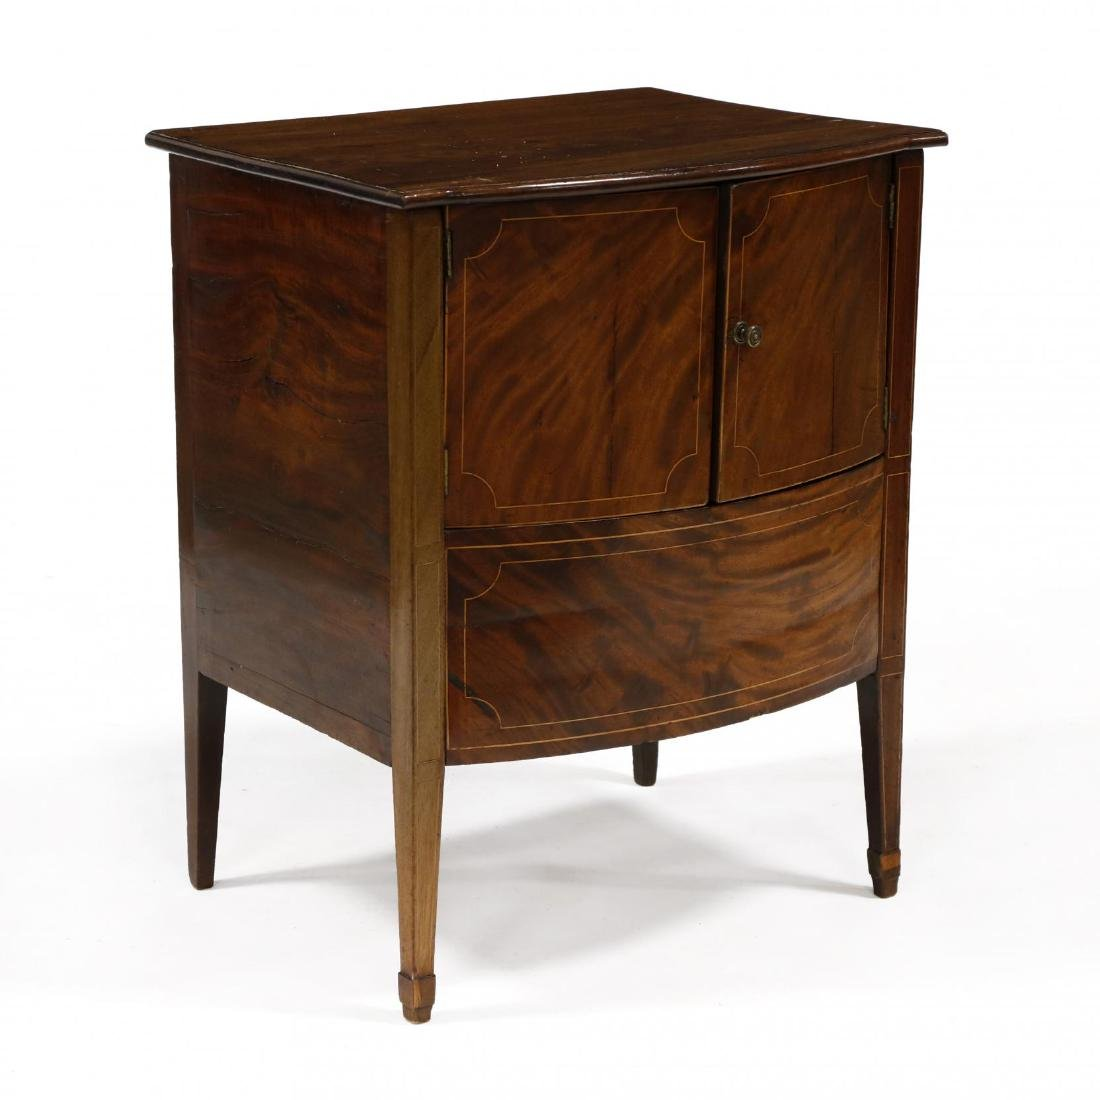 George III Inlaid Mahogany Bow Front Side Cabinet